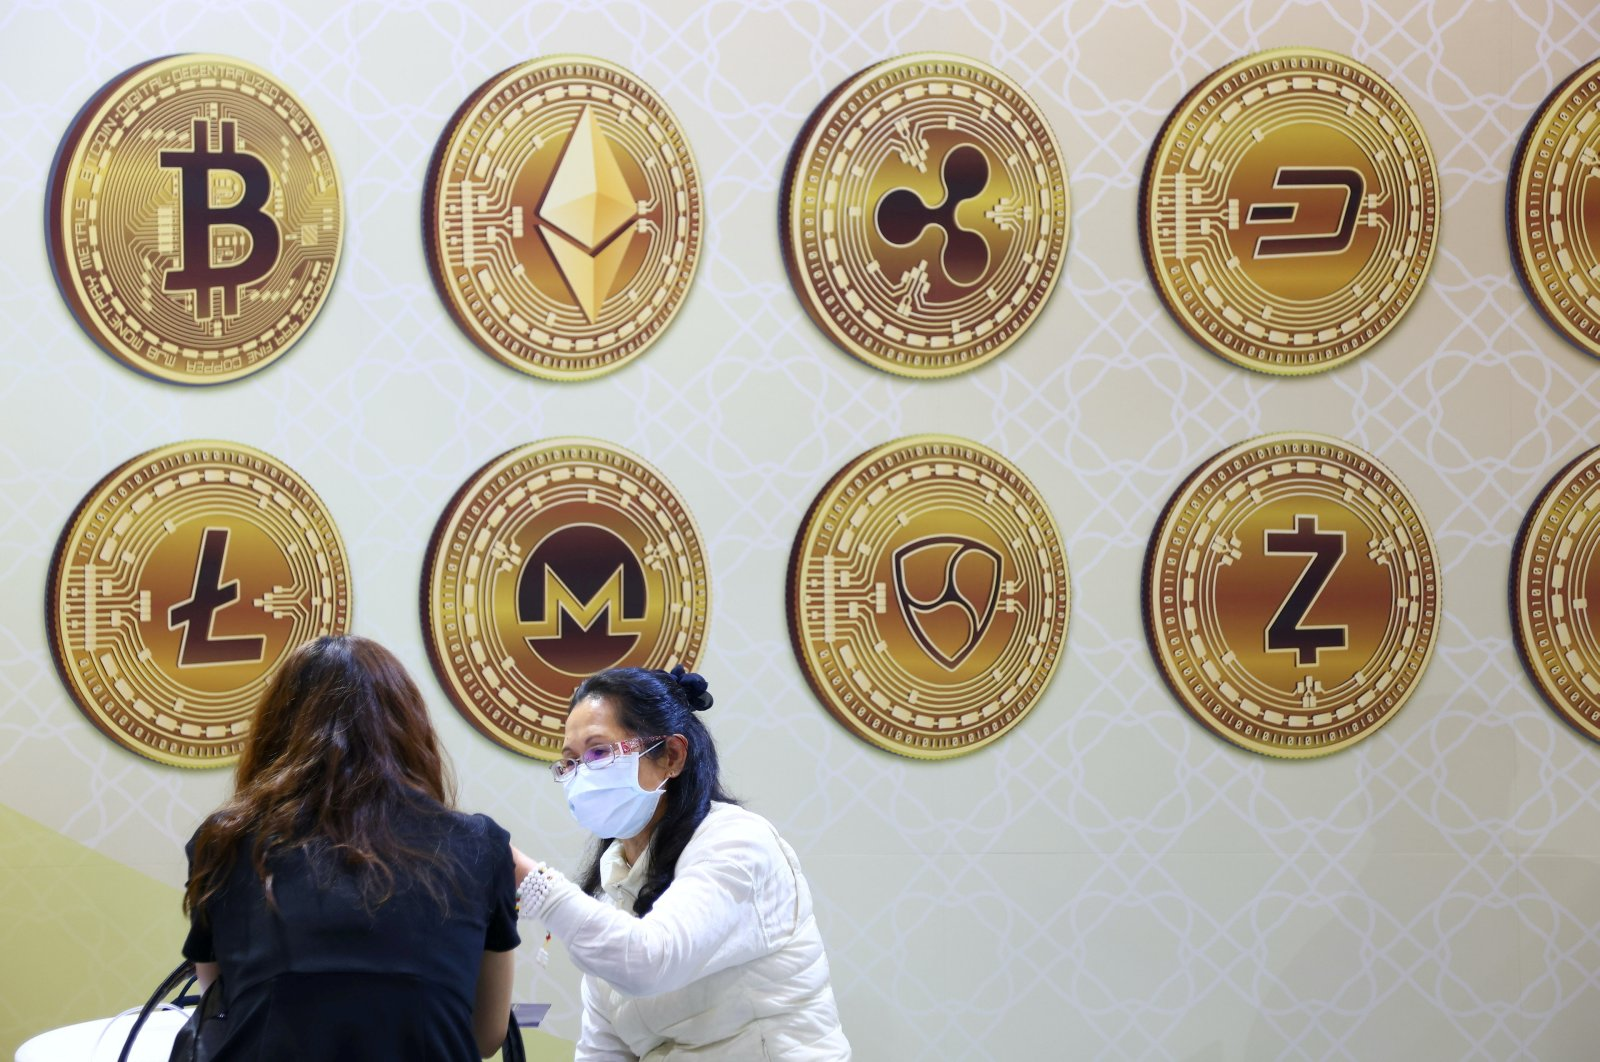 Customers talk against a backboard with signs of cryptocurrency during 2020 Taipei International Finance Expo in Taipei, Taiwan, Nov. 27, 2020. (REUTERS/Ann Wang/File Photo)